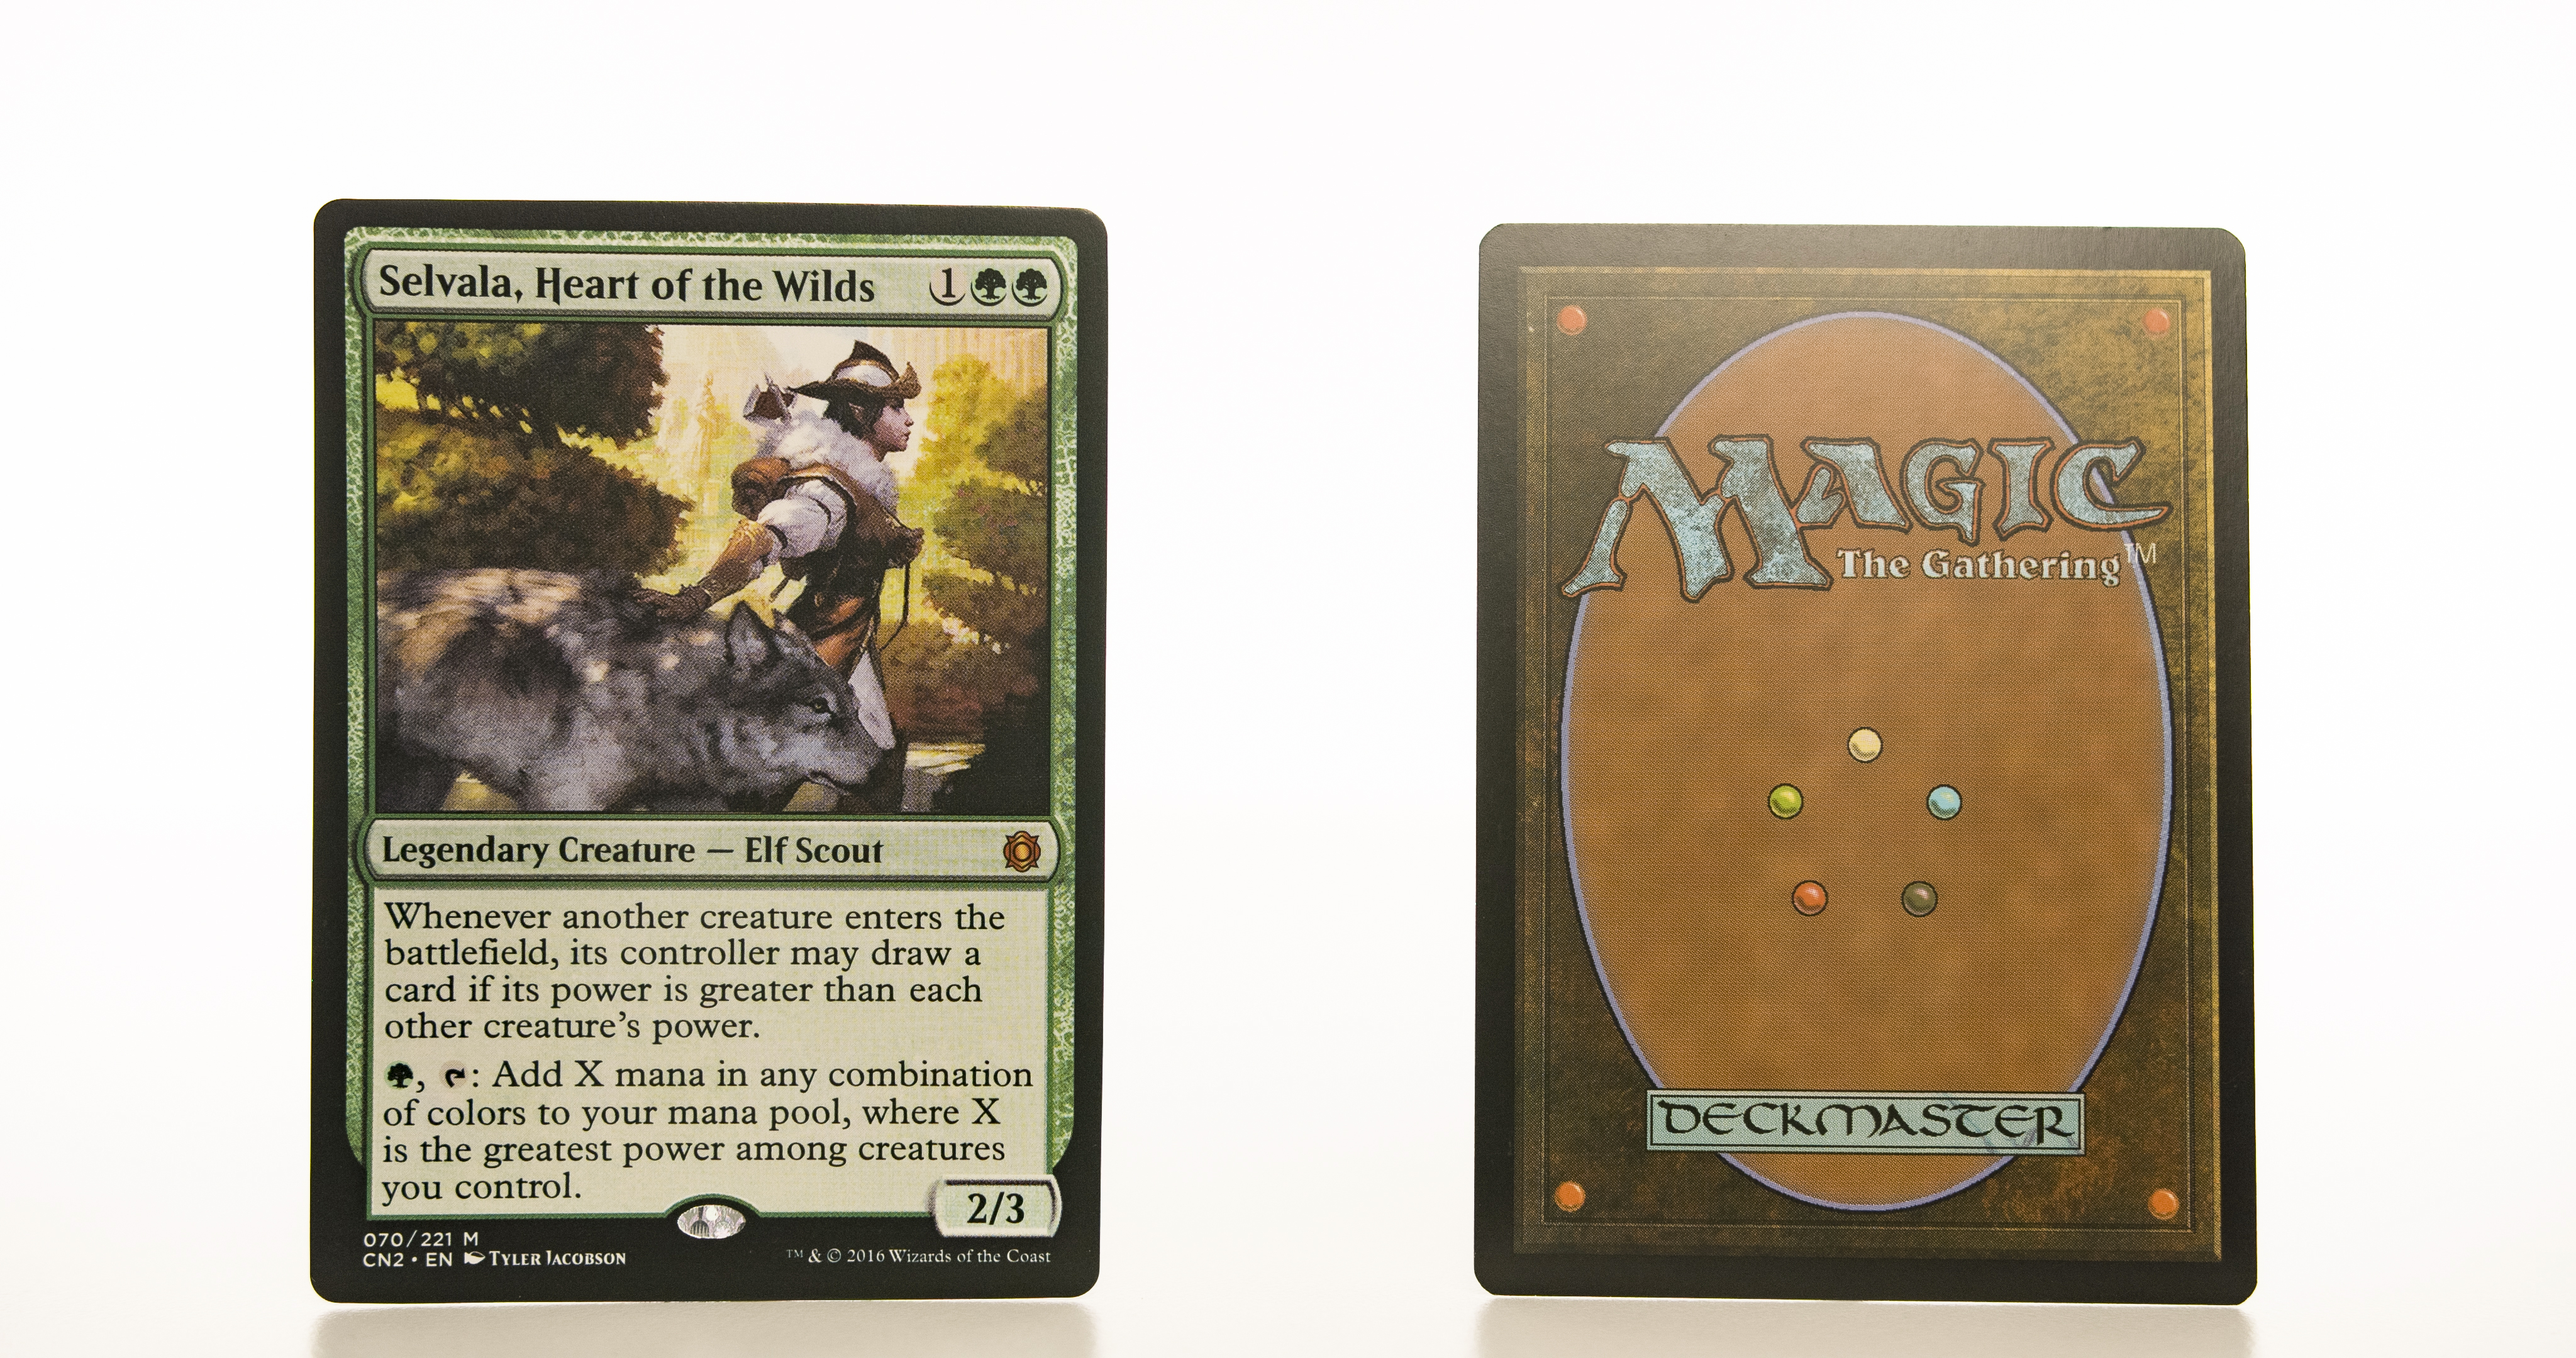 Selvala, Heart of the Wilds CN2 mtg proxy magic the gathering tournament proxies GP FNM available